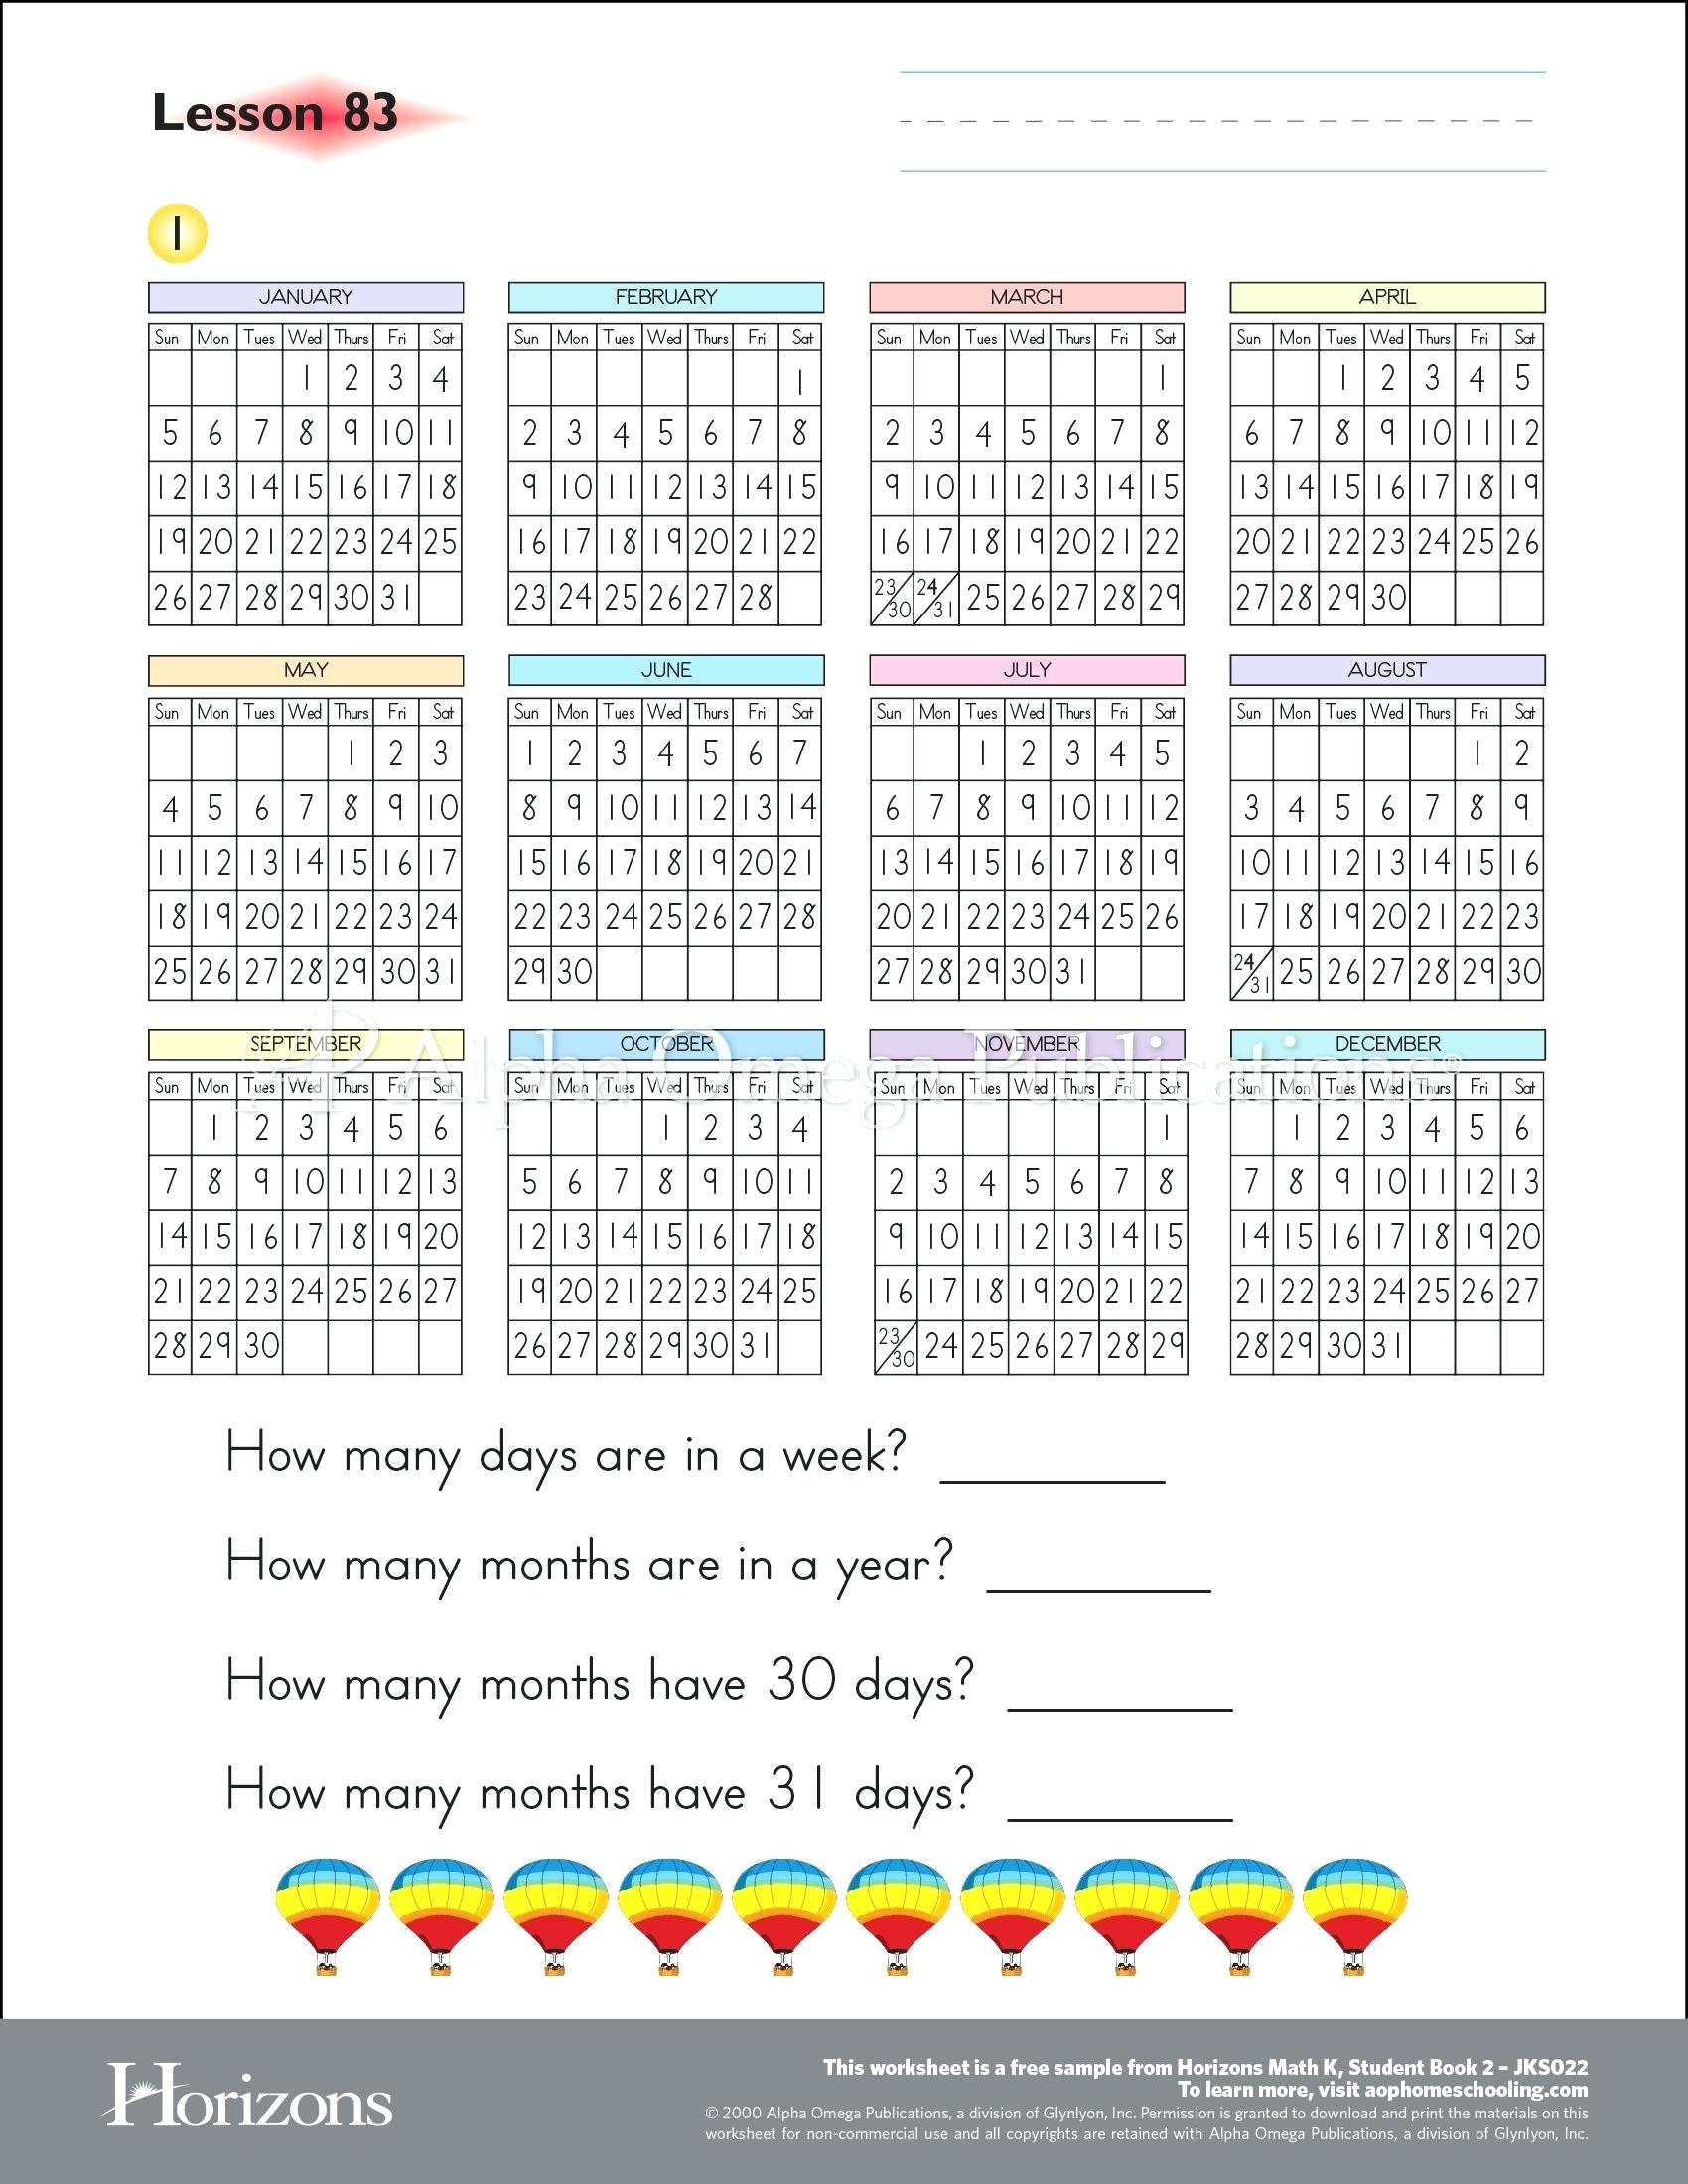 Math Worksheet: Addition To Worksheets Free Math Drills Flashcards - Printable Puzzles Ks3